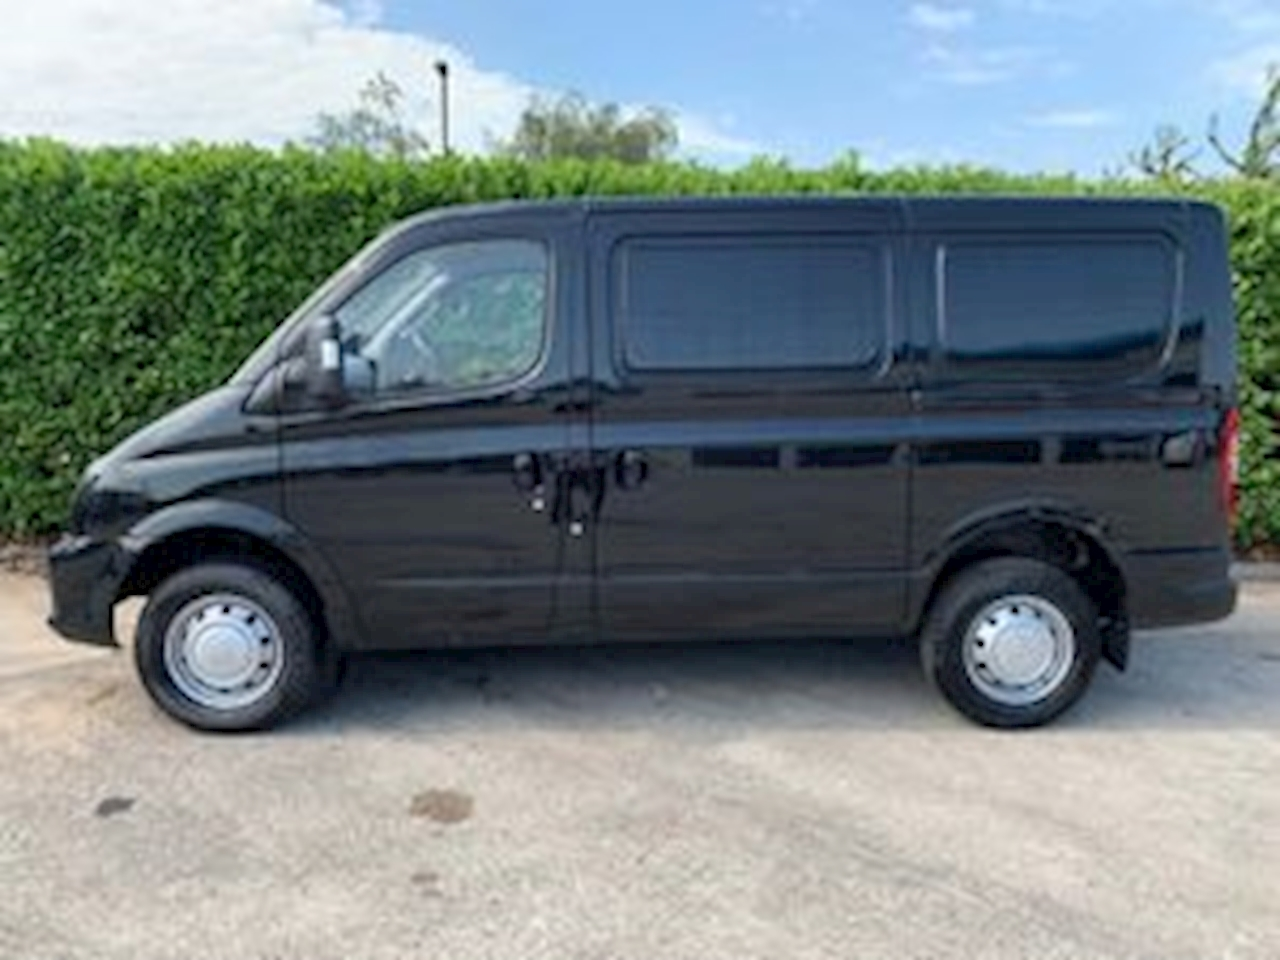 LDV V80 A110 Panel Van 2.5 Manual Diesel